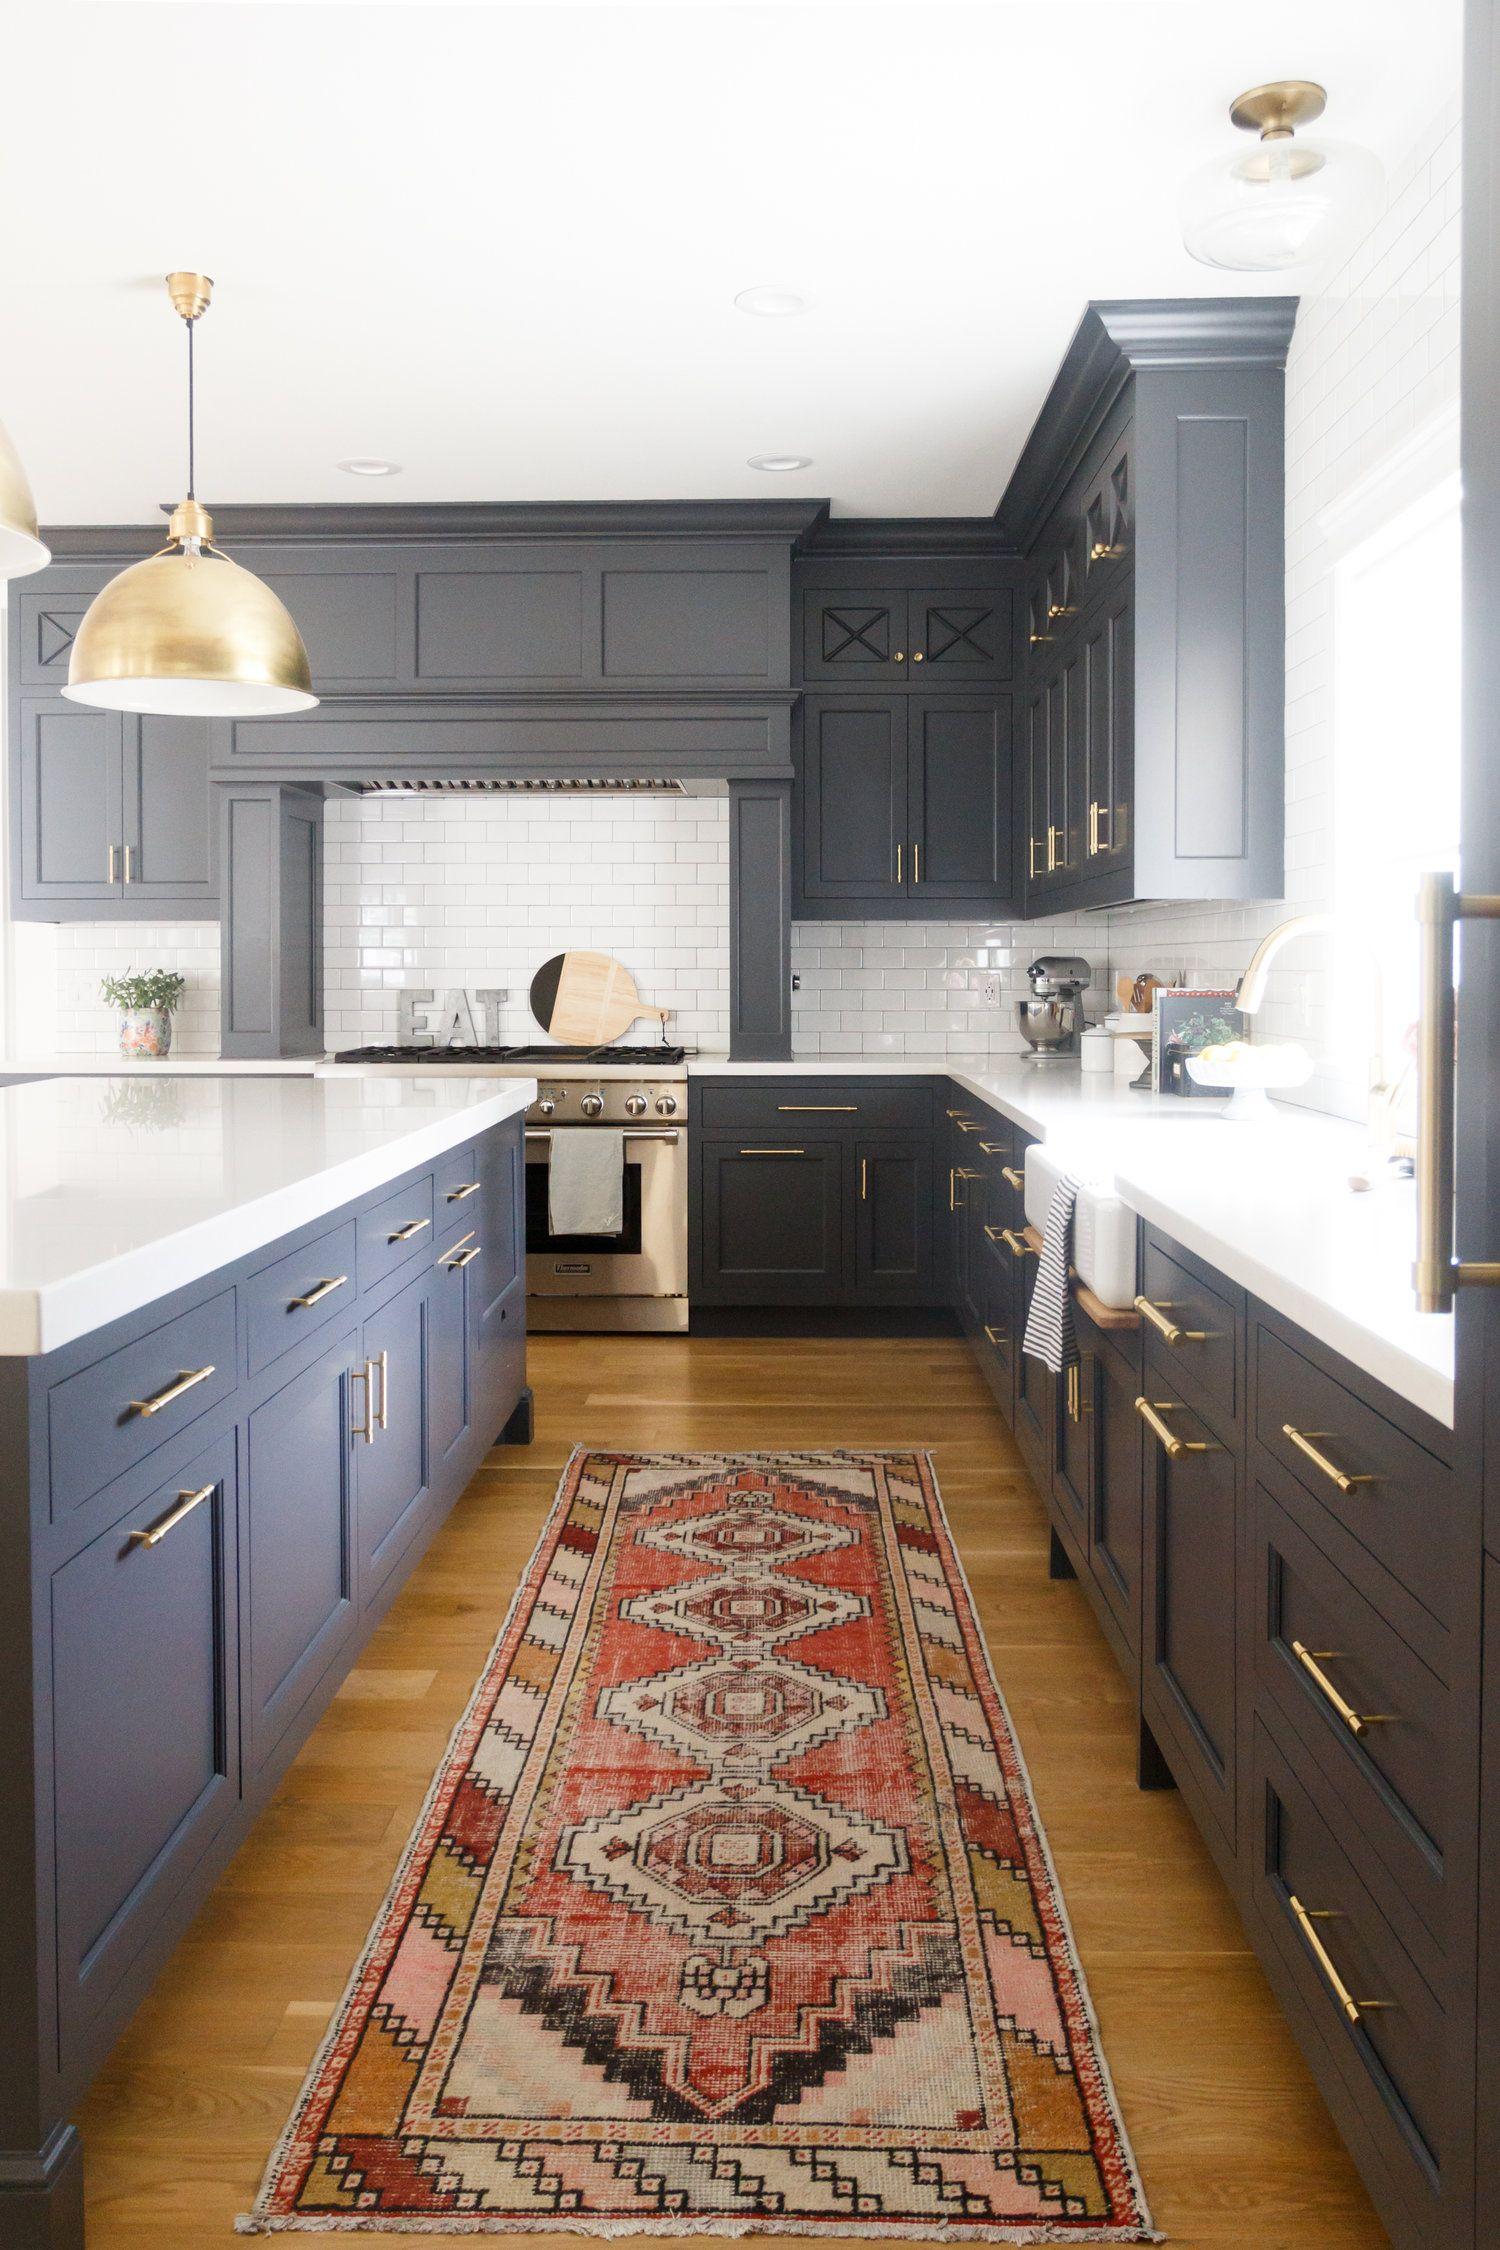 Diy Sos Kitchen Design Cabinet Color Is